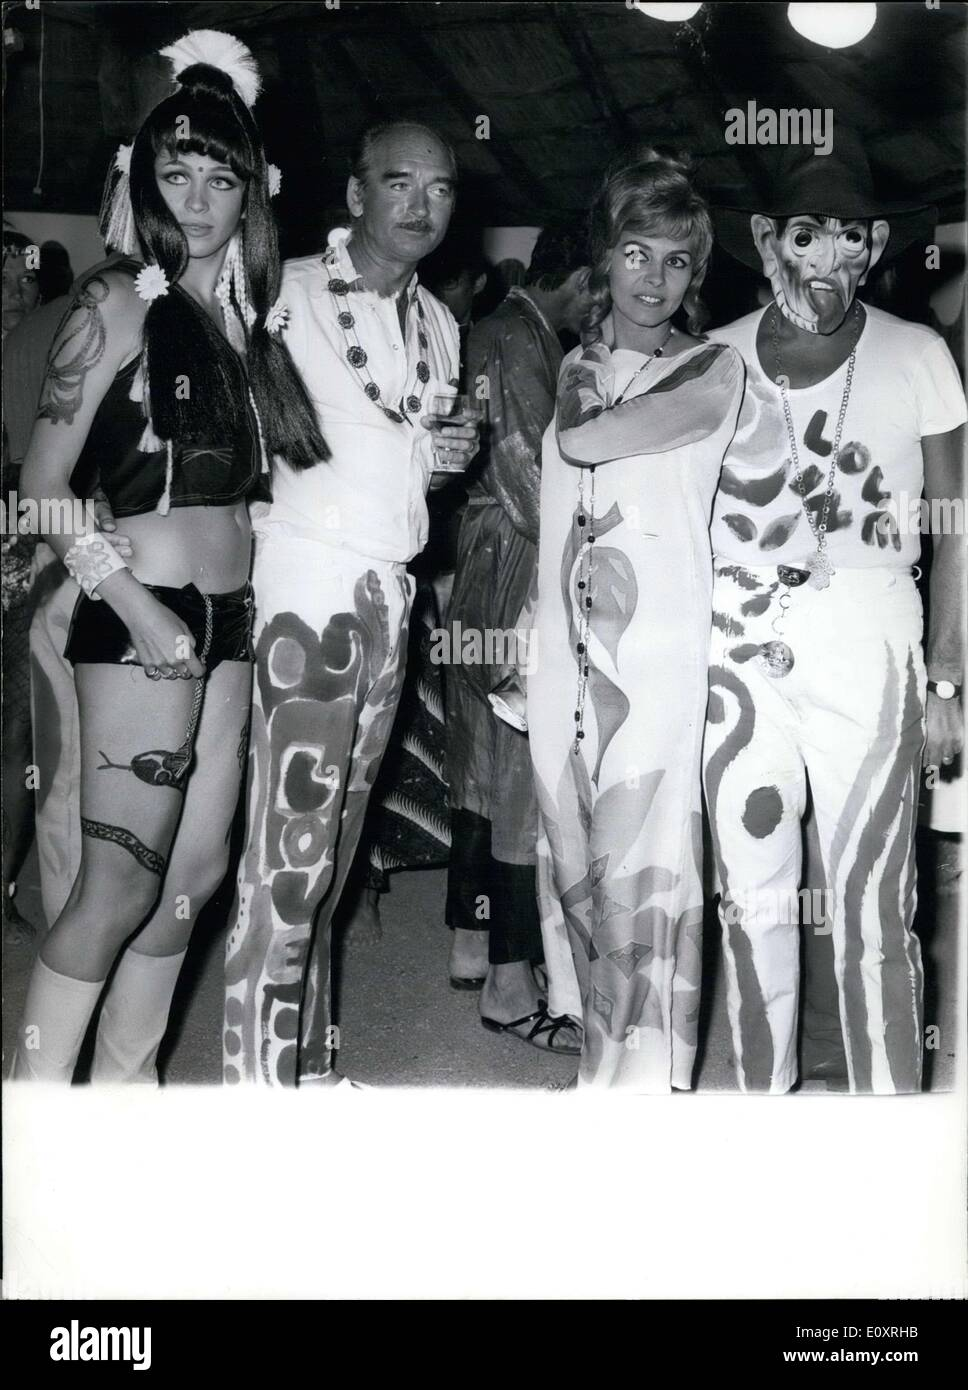 Aug. 14, 1967 - Until today, France was spared from psychedelic fashion-- by that we mean, a crazy fad started across the Atlantic. Thanks to Eddie Barclay, CEO of a big disco company, psychedelic fashion just appeared in St. Tropez, which truly doesn't suit it at all. (From left to right) Marie-Christine Barclay, wife of Eddie Barclay; Eddie Barclay; Michele Mercier and guest. - Stock Image